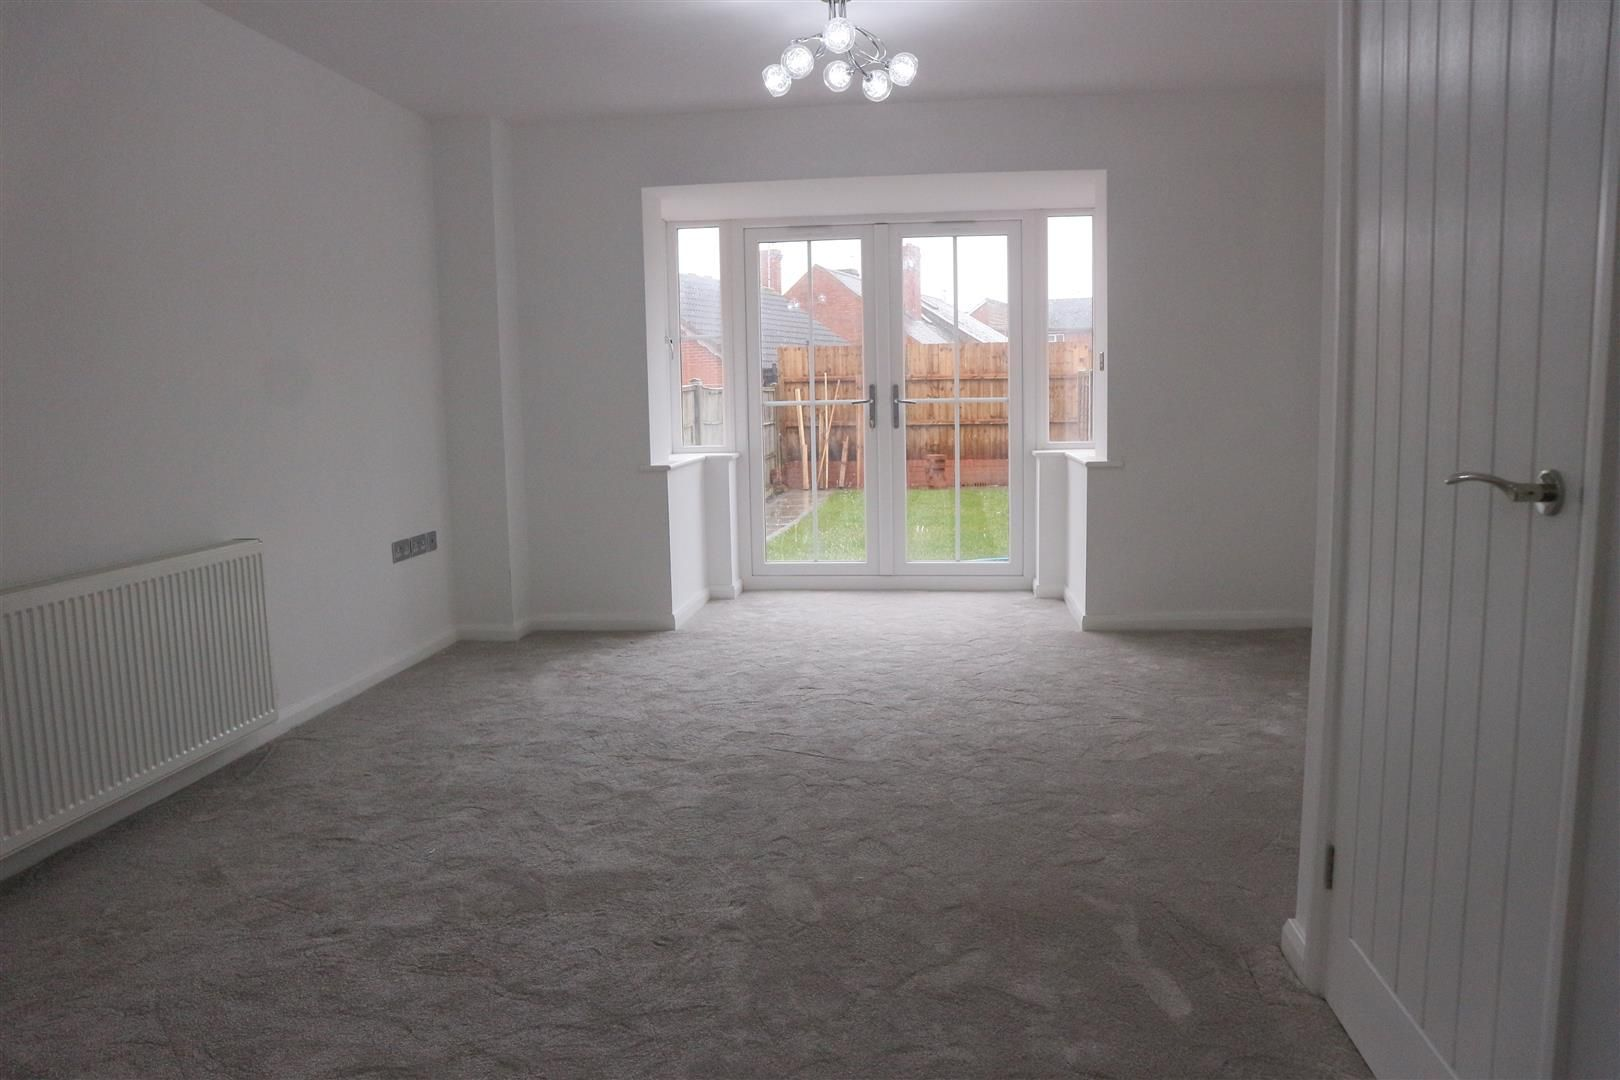 3 bed semi-detached for sale in Netherton 5